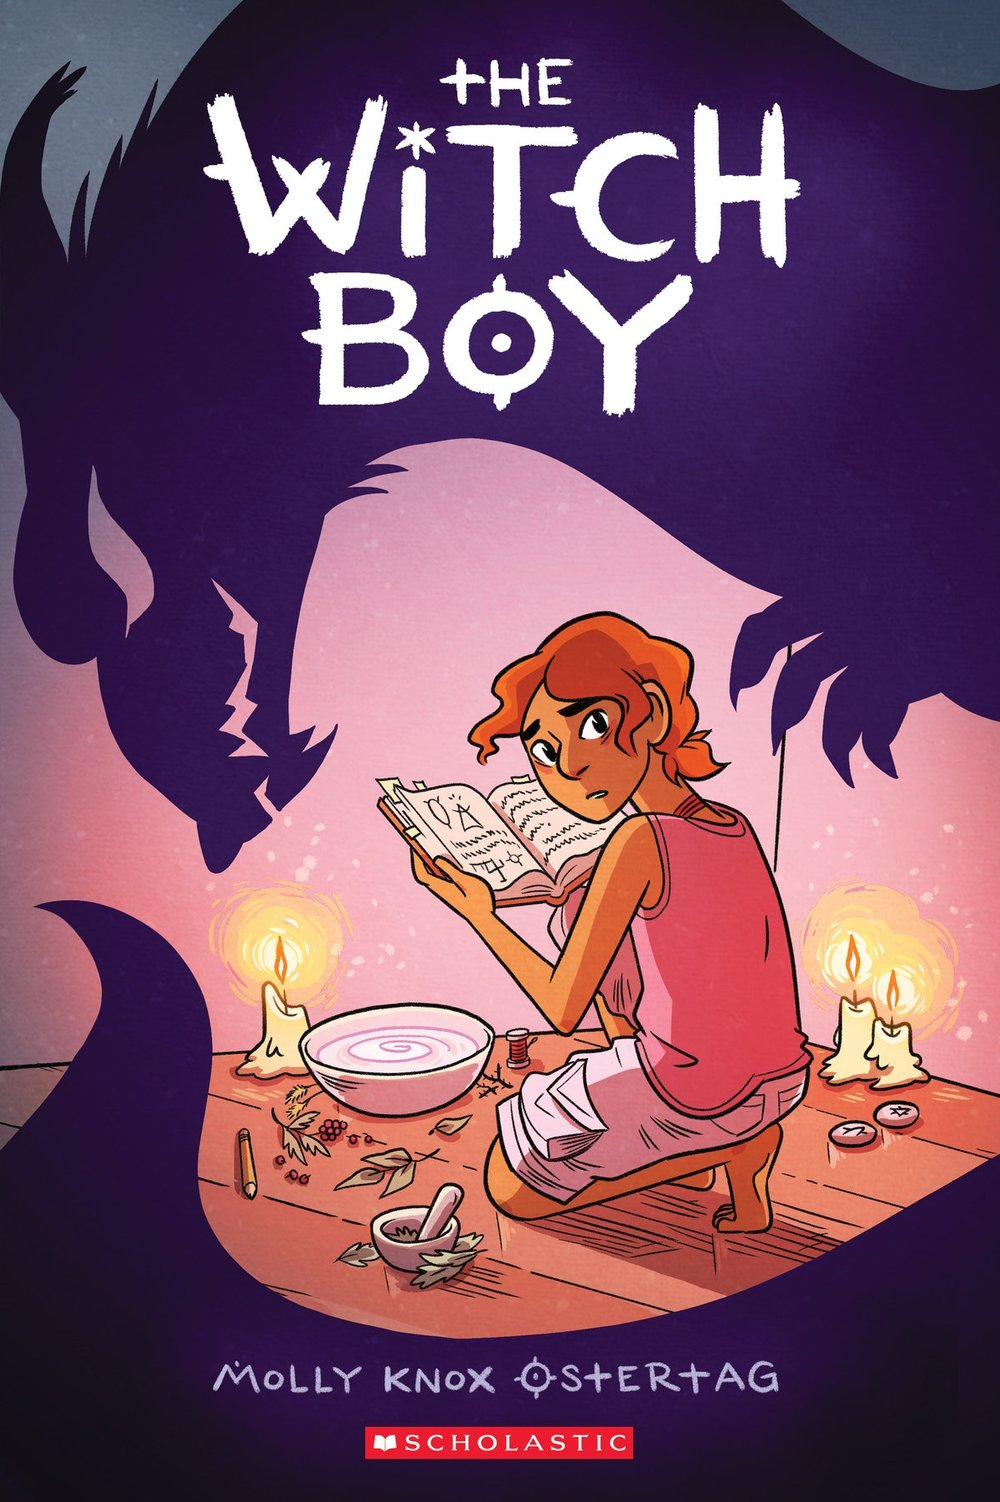 - THE WITCH BOY(Scholastic Press, Oct. 2017)2018 EBSCO SEE-IT Award winner2018 Prism Award winner2018 EGL finalist2018 Dwayne McDuffie for Kid's Comics nomineeFilm/TV: Fox AnimationTranslations: rights@scholastic.comFrance (Editions Kinaye)Germany (Tokyopop GMBH)Israel (Keter Books)Italy (Editrice Il Castoro)Spain (HarperCollins Iberica)Sweden (Bokforlaget Hegas)In thirteen-year-old Aster's family, all the girls are raised to be witches, while boys grow up to be shapeshifters. Anyone who dares cross those lines is exiled. Unfortunately for Aster, he still hasn't shifted . . . and he's still fascinated by witchery, no matter how forbidden it might be.When a mysterious danger threatens the other boys, Aster knows he can help -- as a witch. It will take the encouragement of a new friend, the non-magical and non-conforming Charlie, to convince Aster to try practicing his skills. And it will require even more courage to save his family . . . and be truly himself.